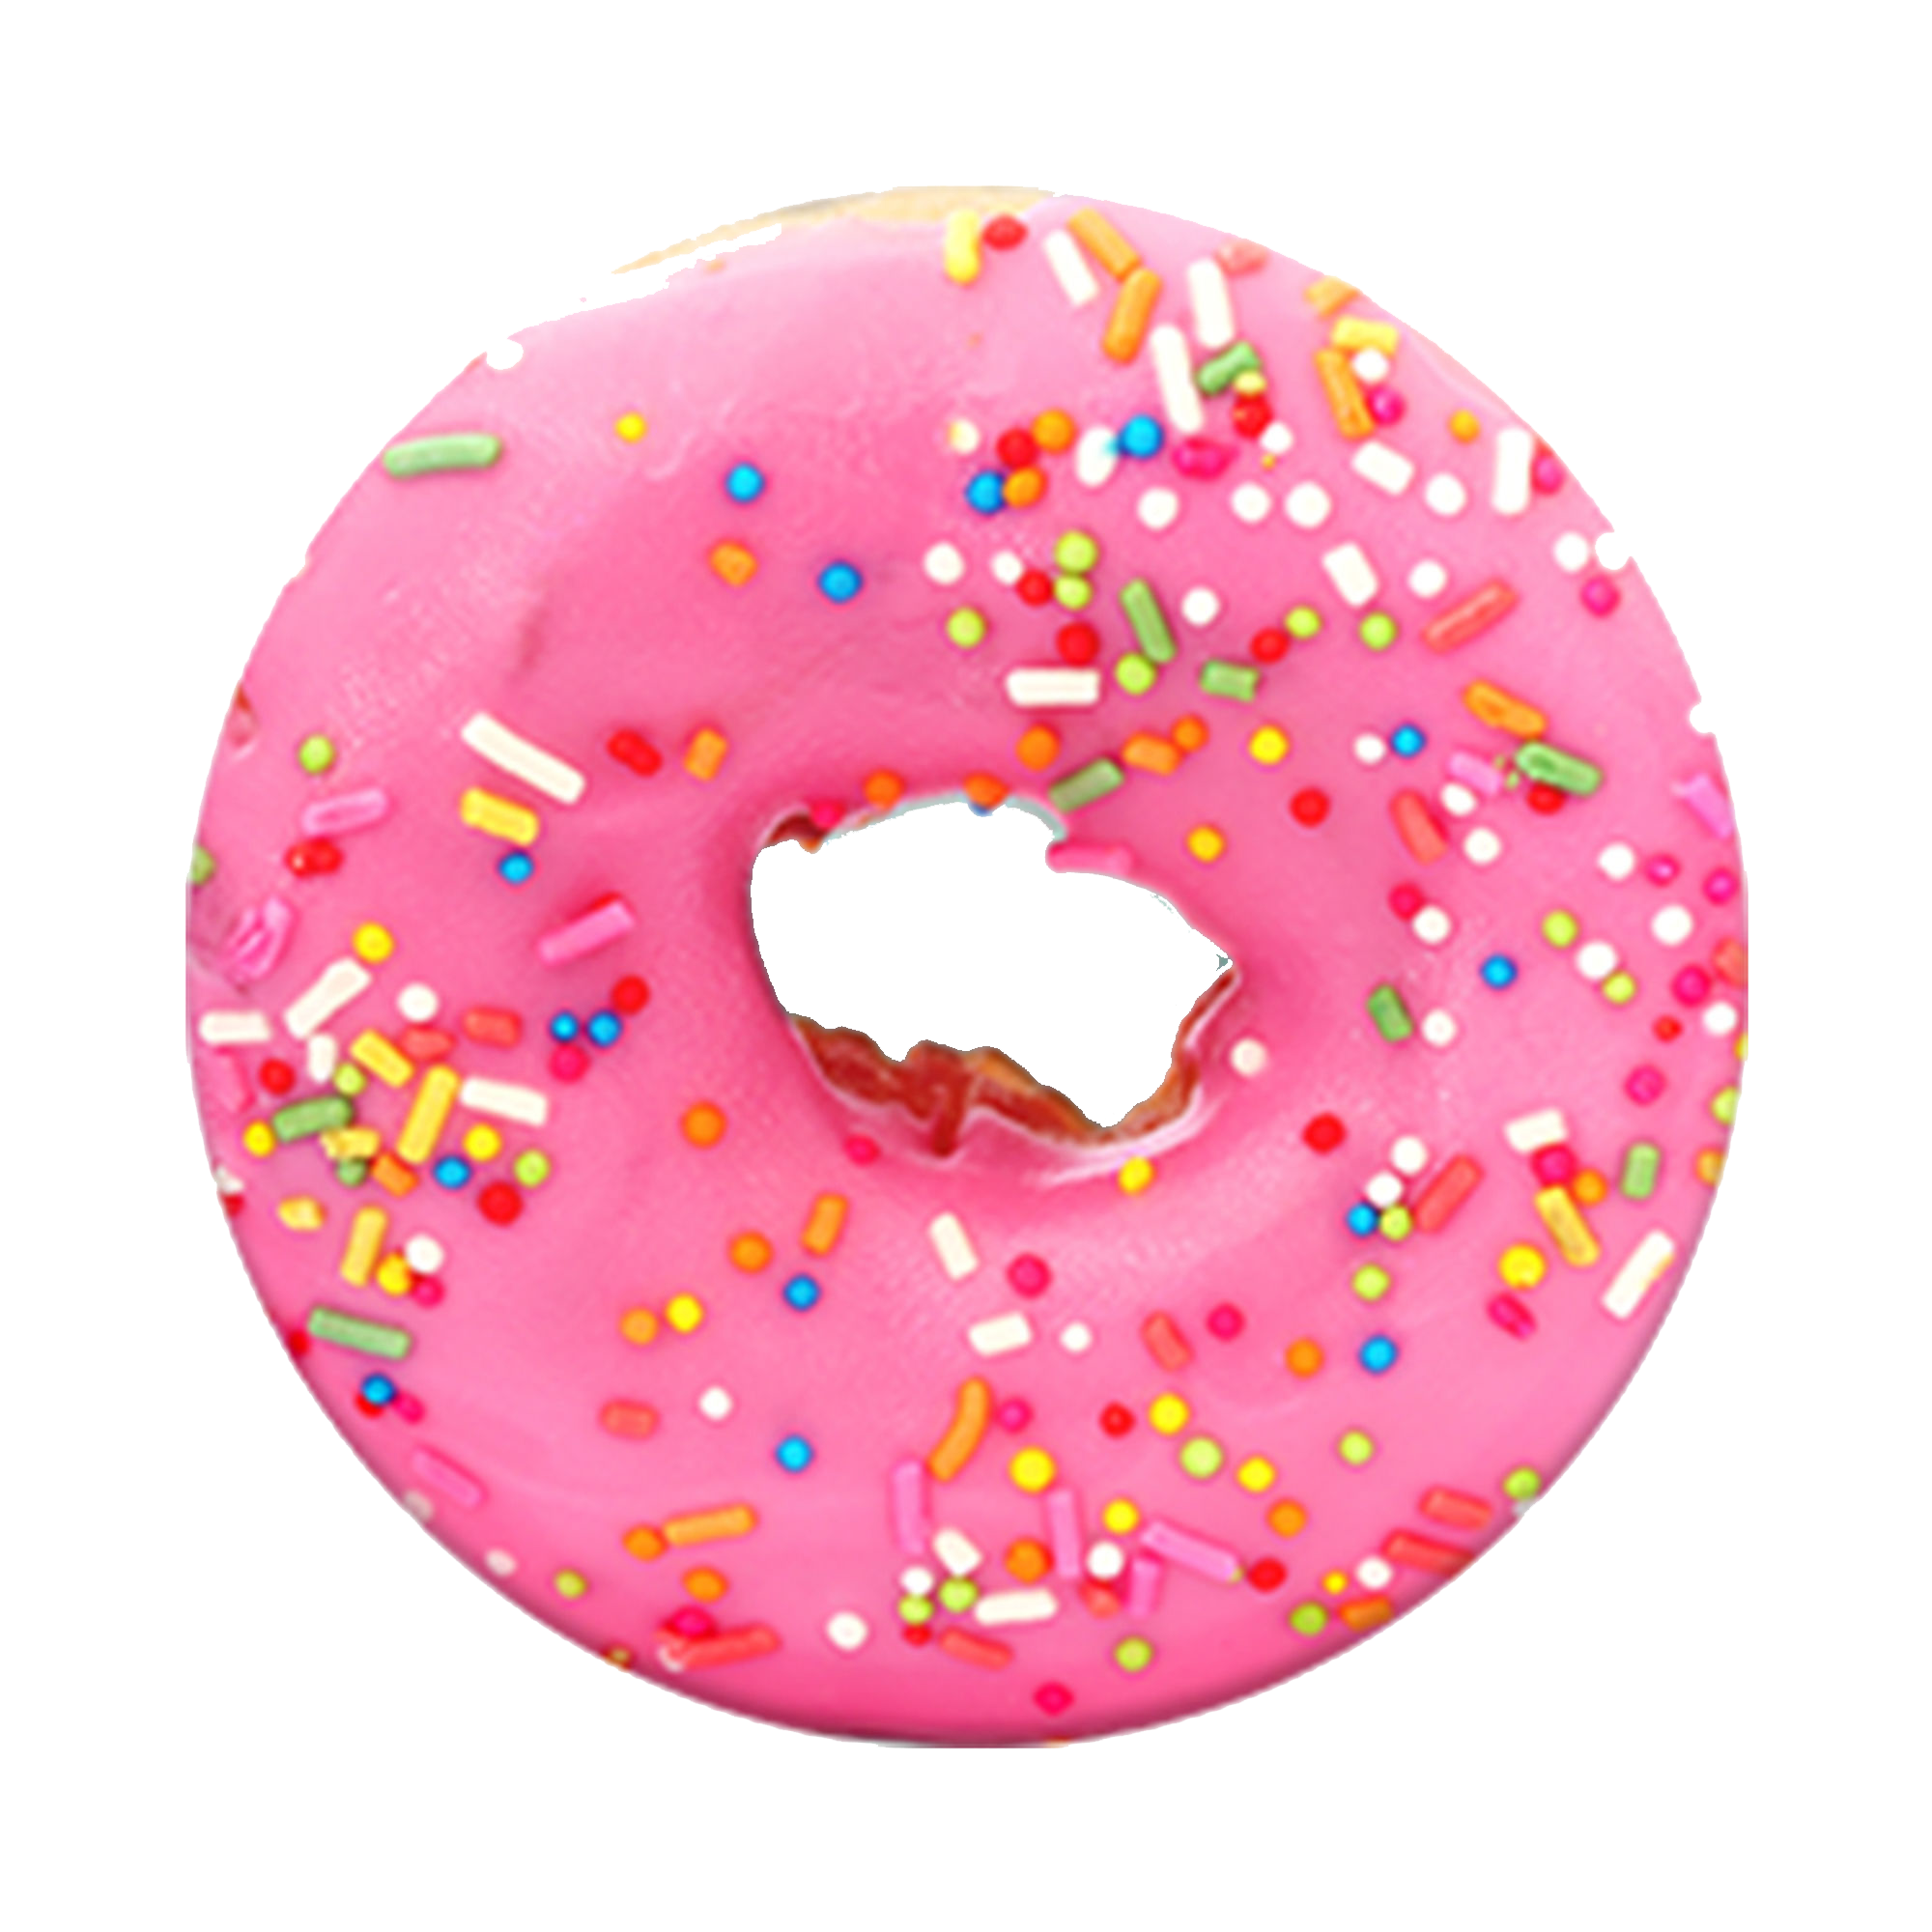 Doughnut clipart transparent background. Donut png names